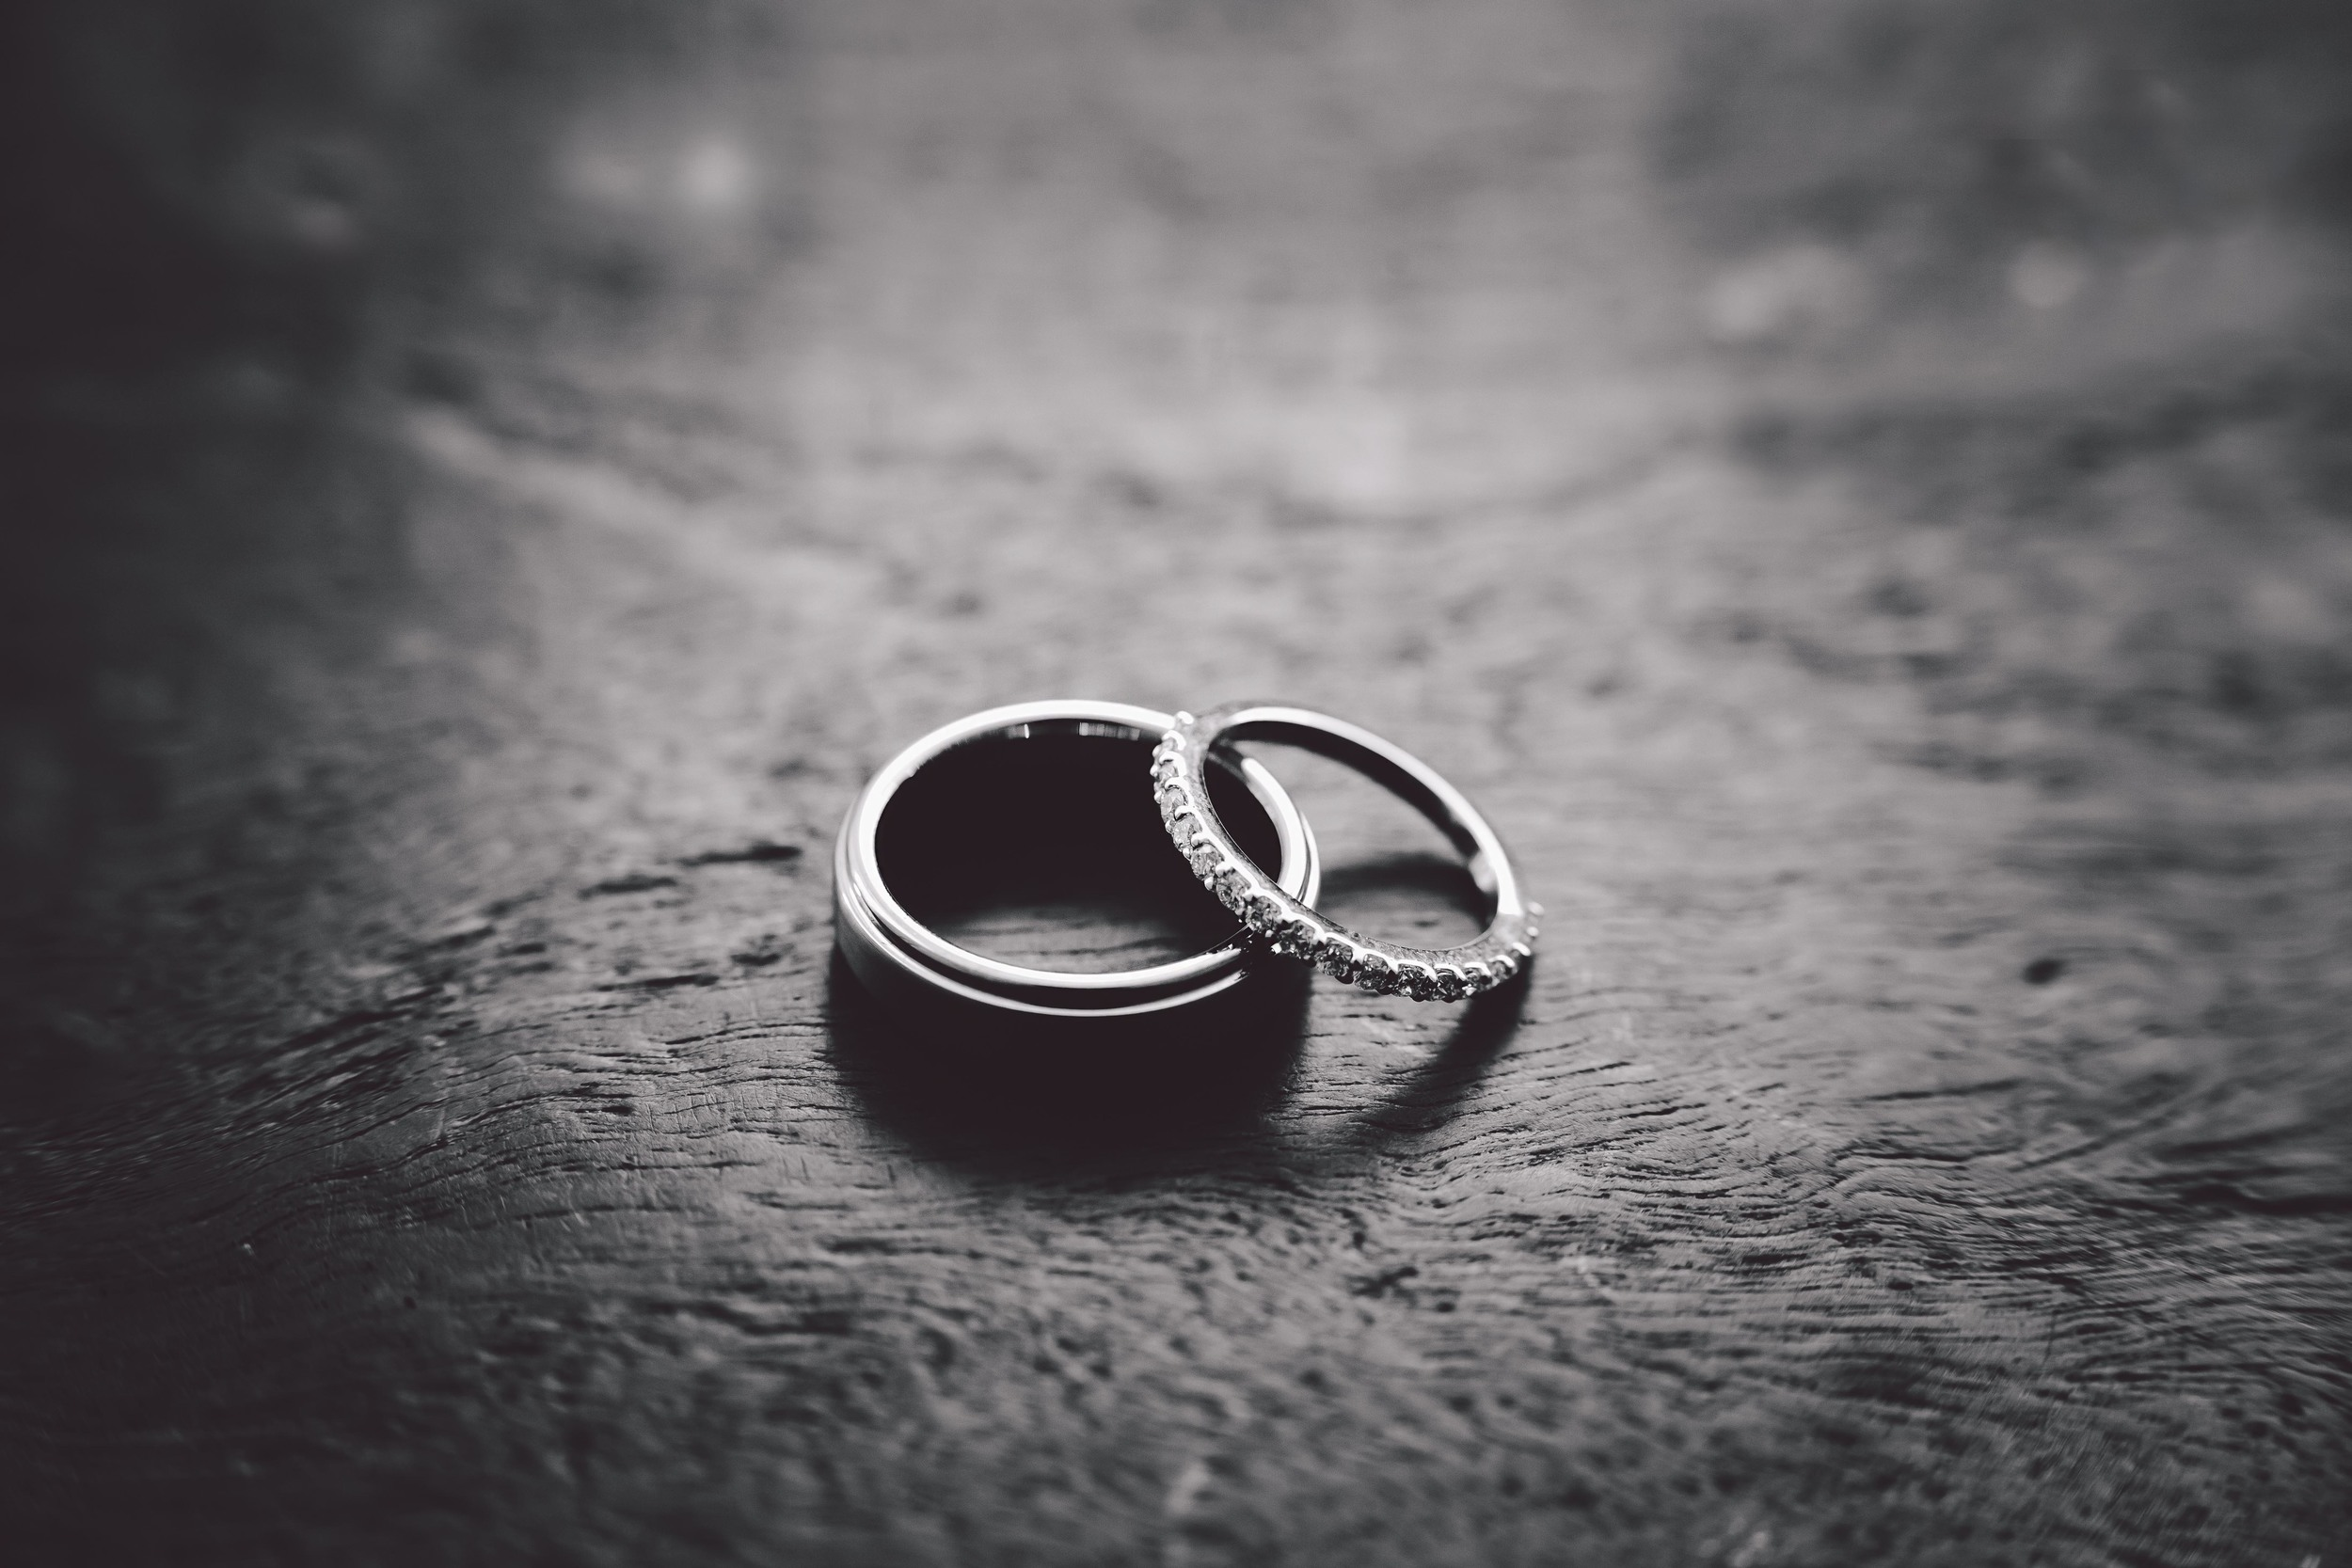 Bec+Matt-Sneak-Peek-rings-.jpg